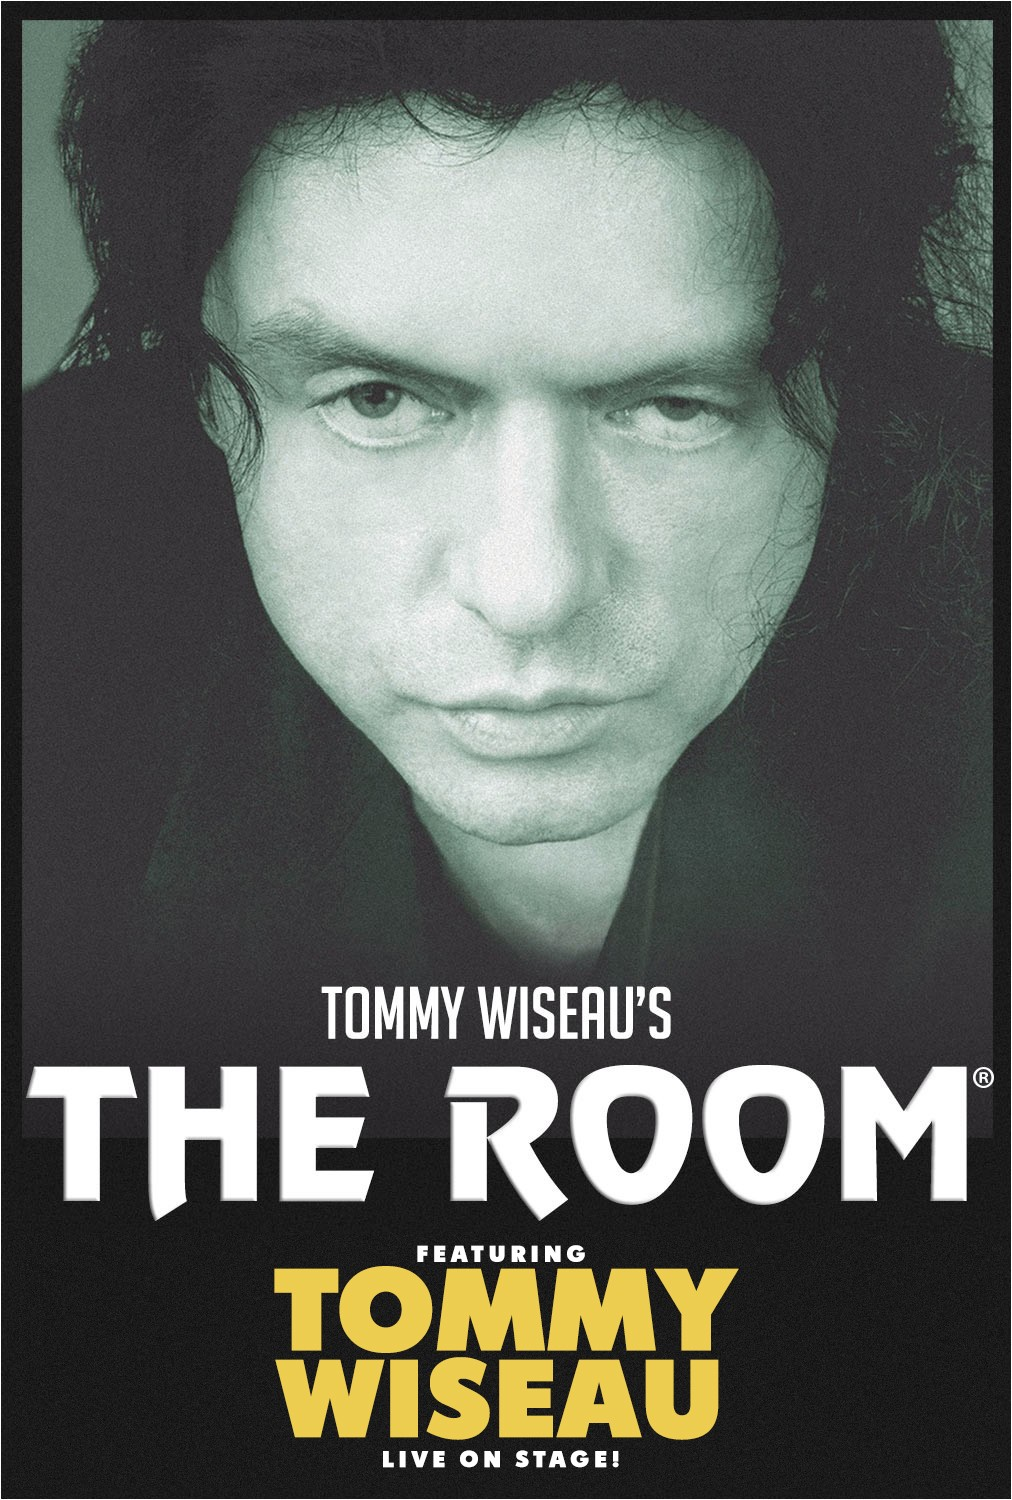 THE ROOM • with TOMMY WISEAU LIVE ON STAGE!